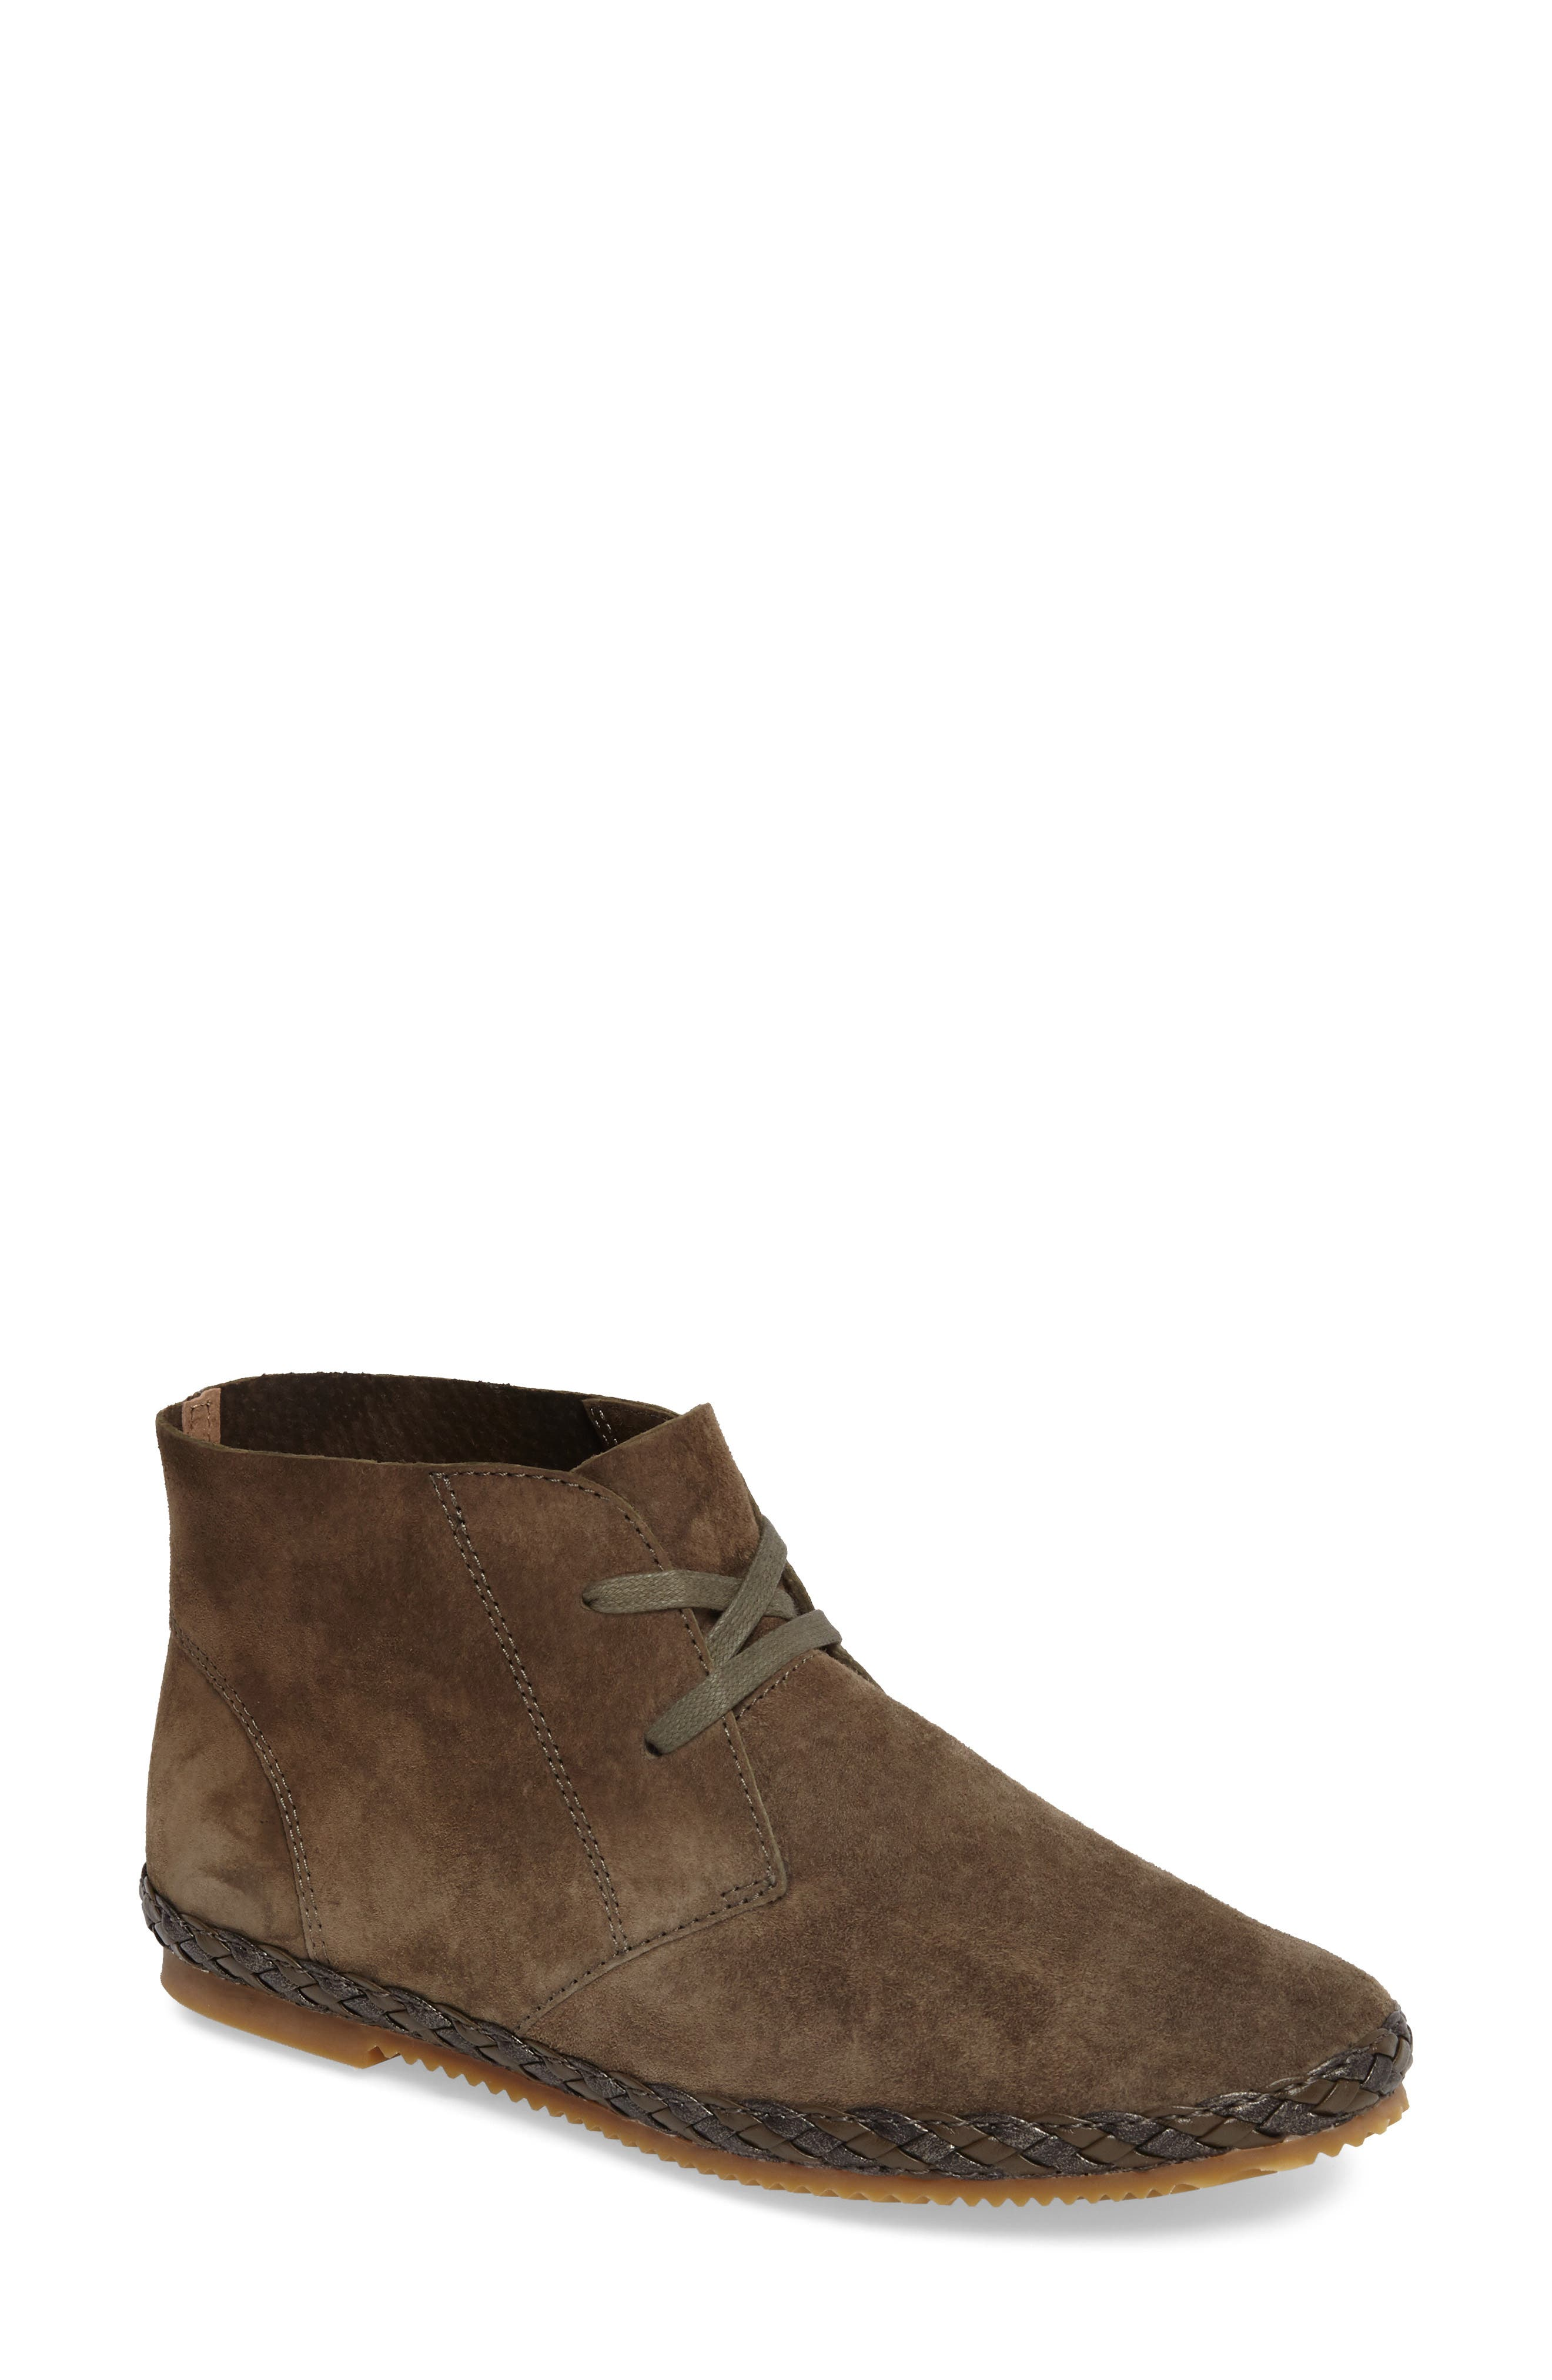 Addison Bootie,                         Main,                         color, Olive Suede